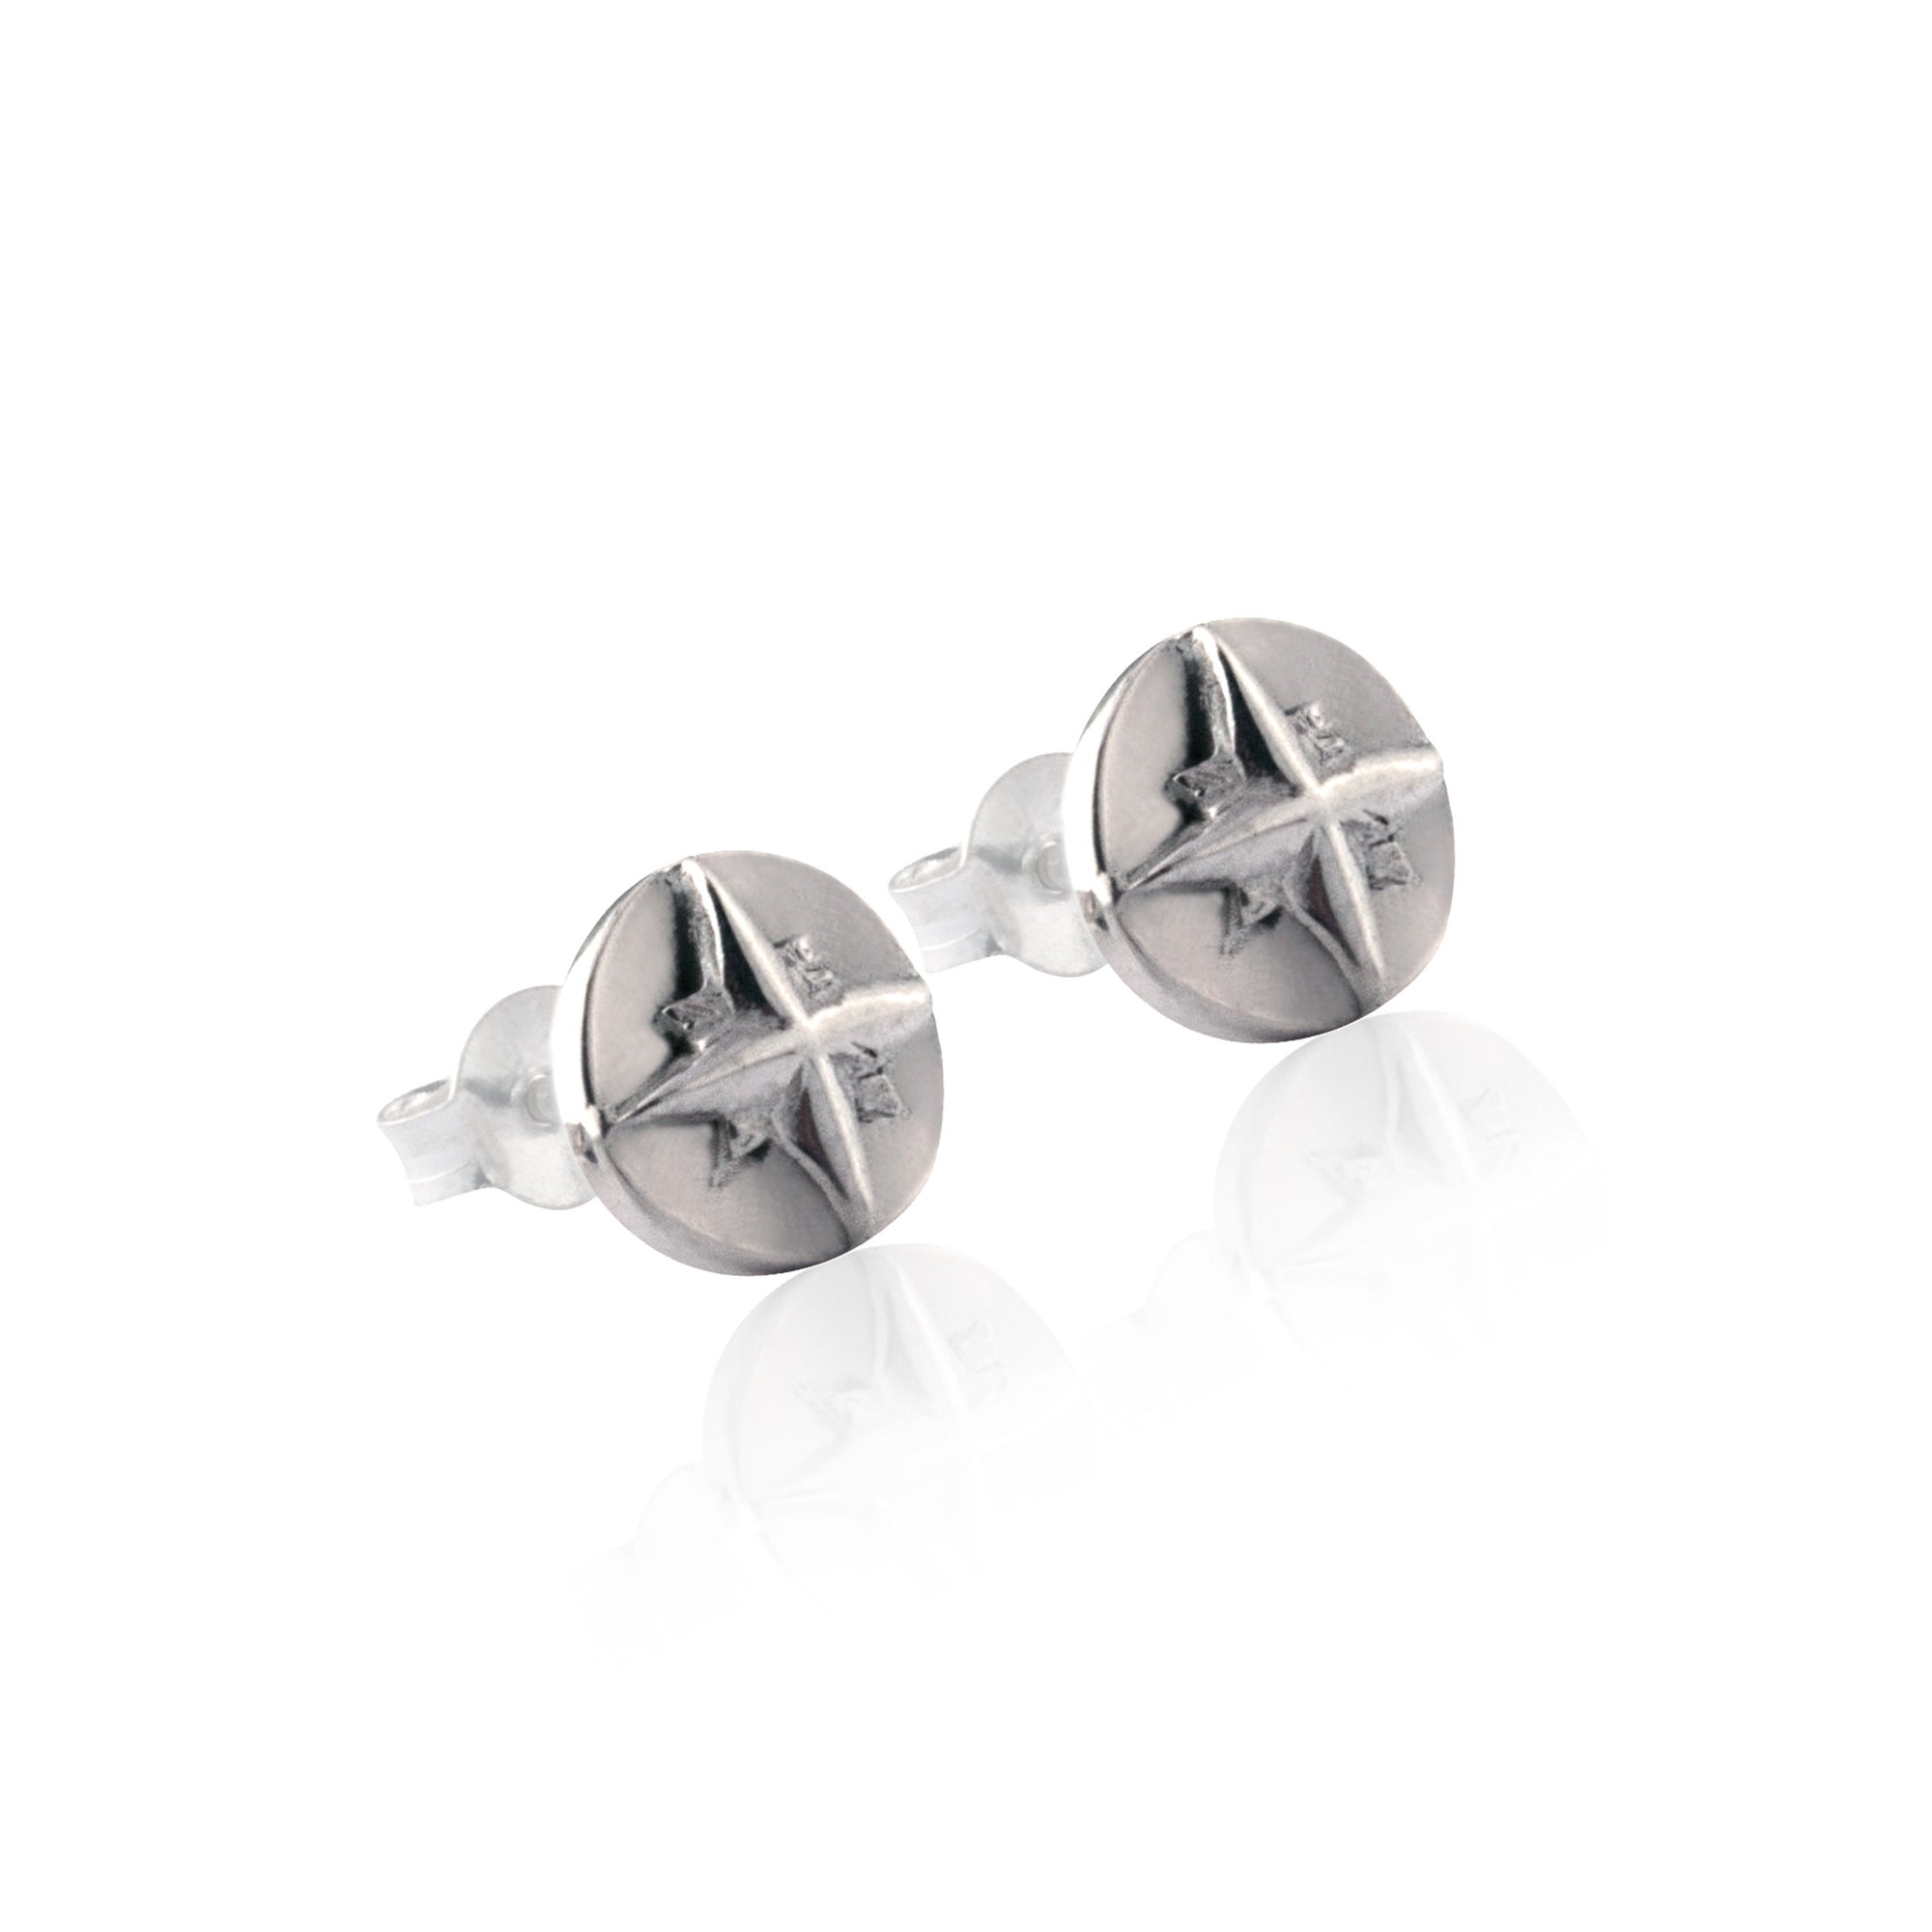 Born to roam Earrings (Silver)